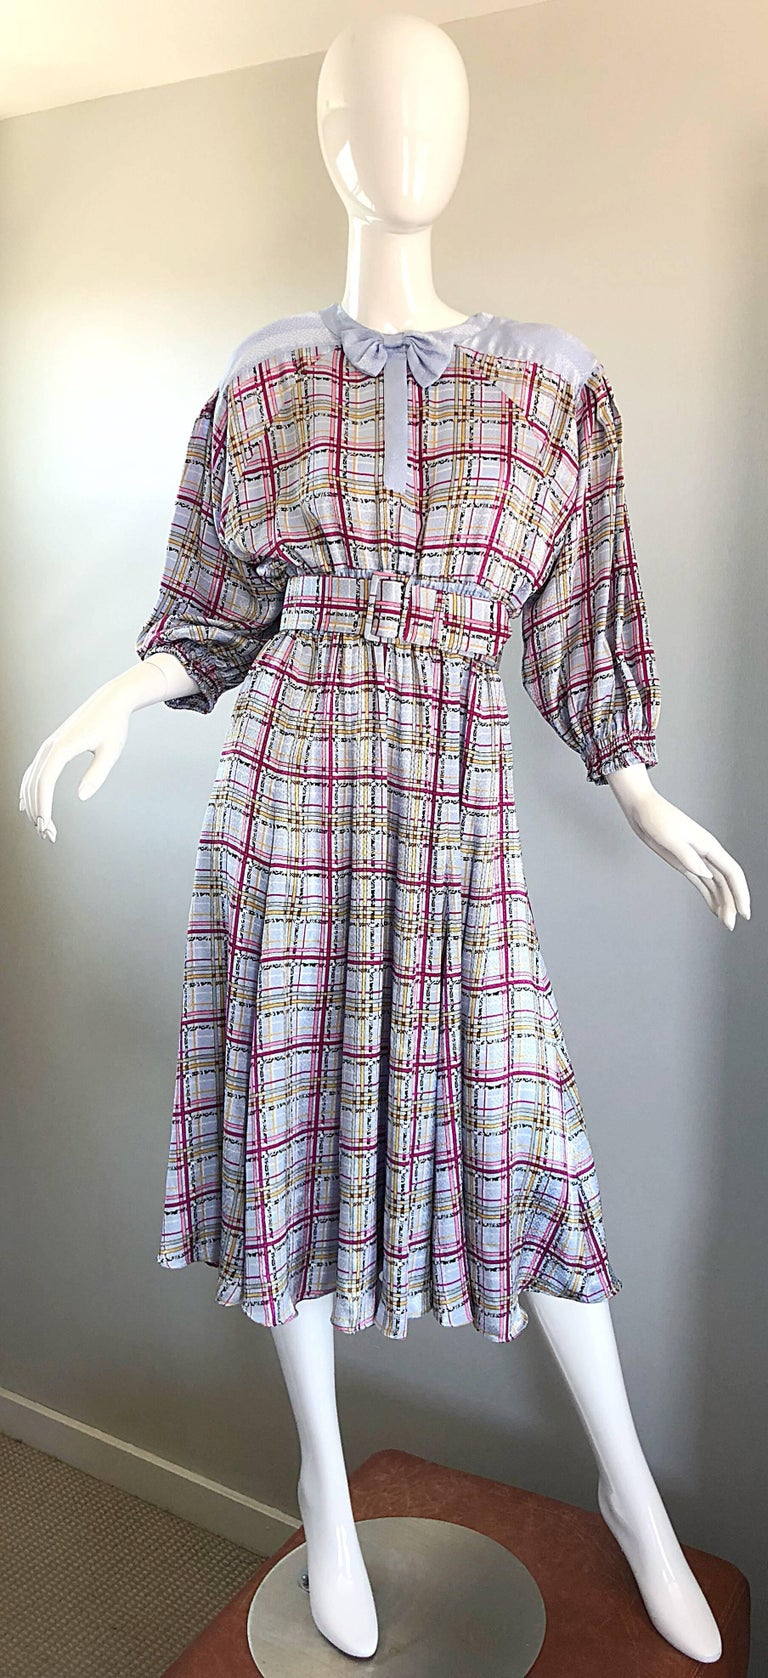 Vintage Diane Freis 1980s Pastel Purple and Pink Plaid 80s Belted Dress For Sale 4